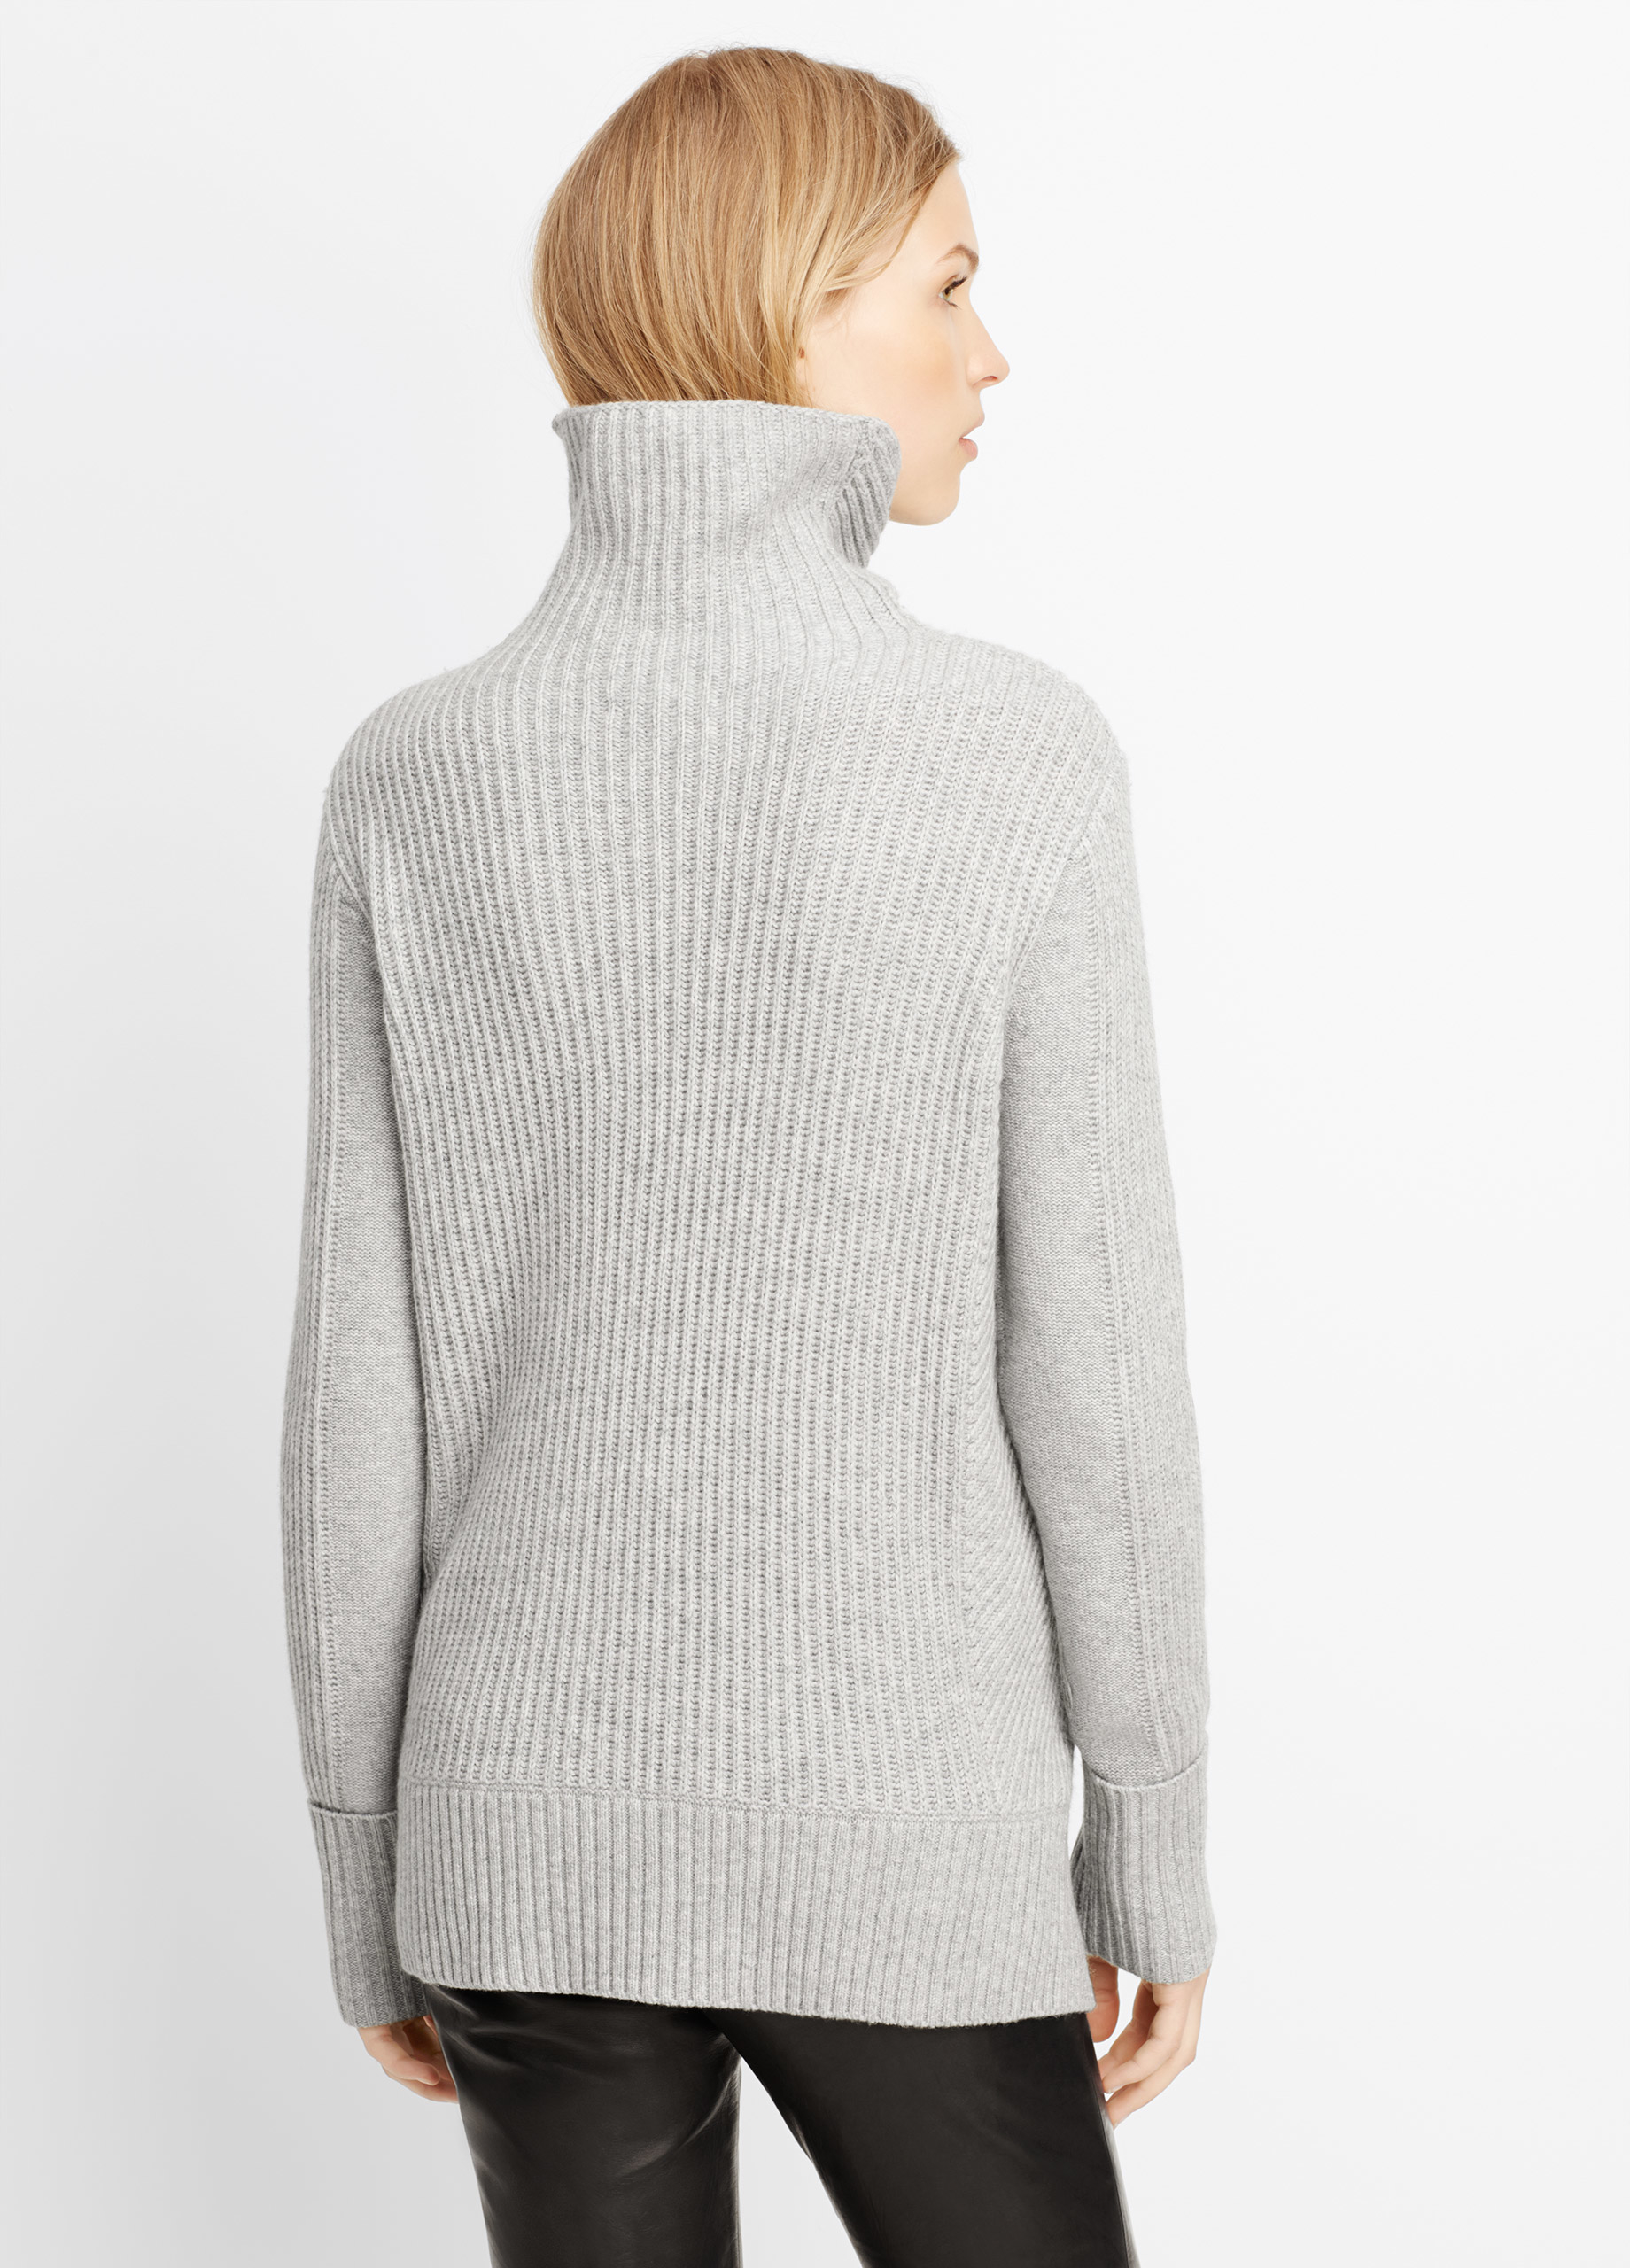 Find great deals on eBay for grey wool sweater. Shop with confidence.